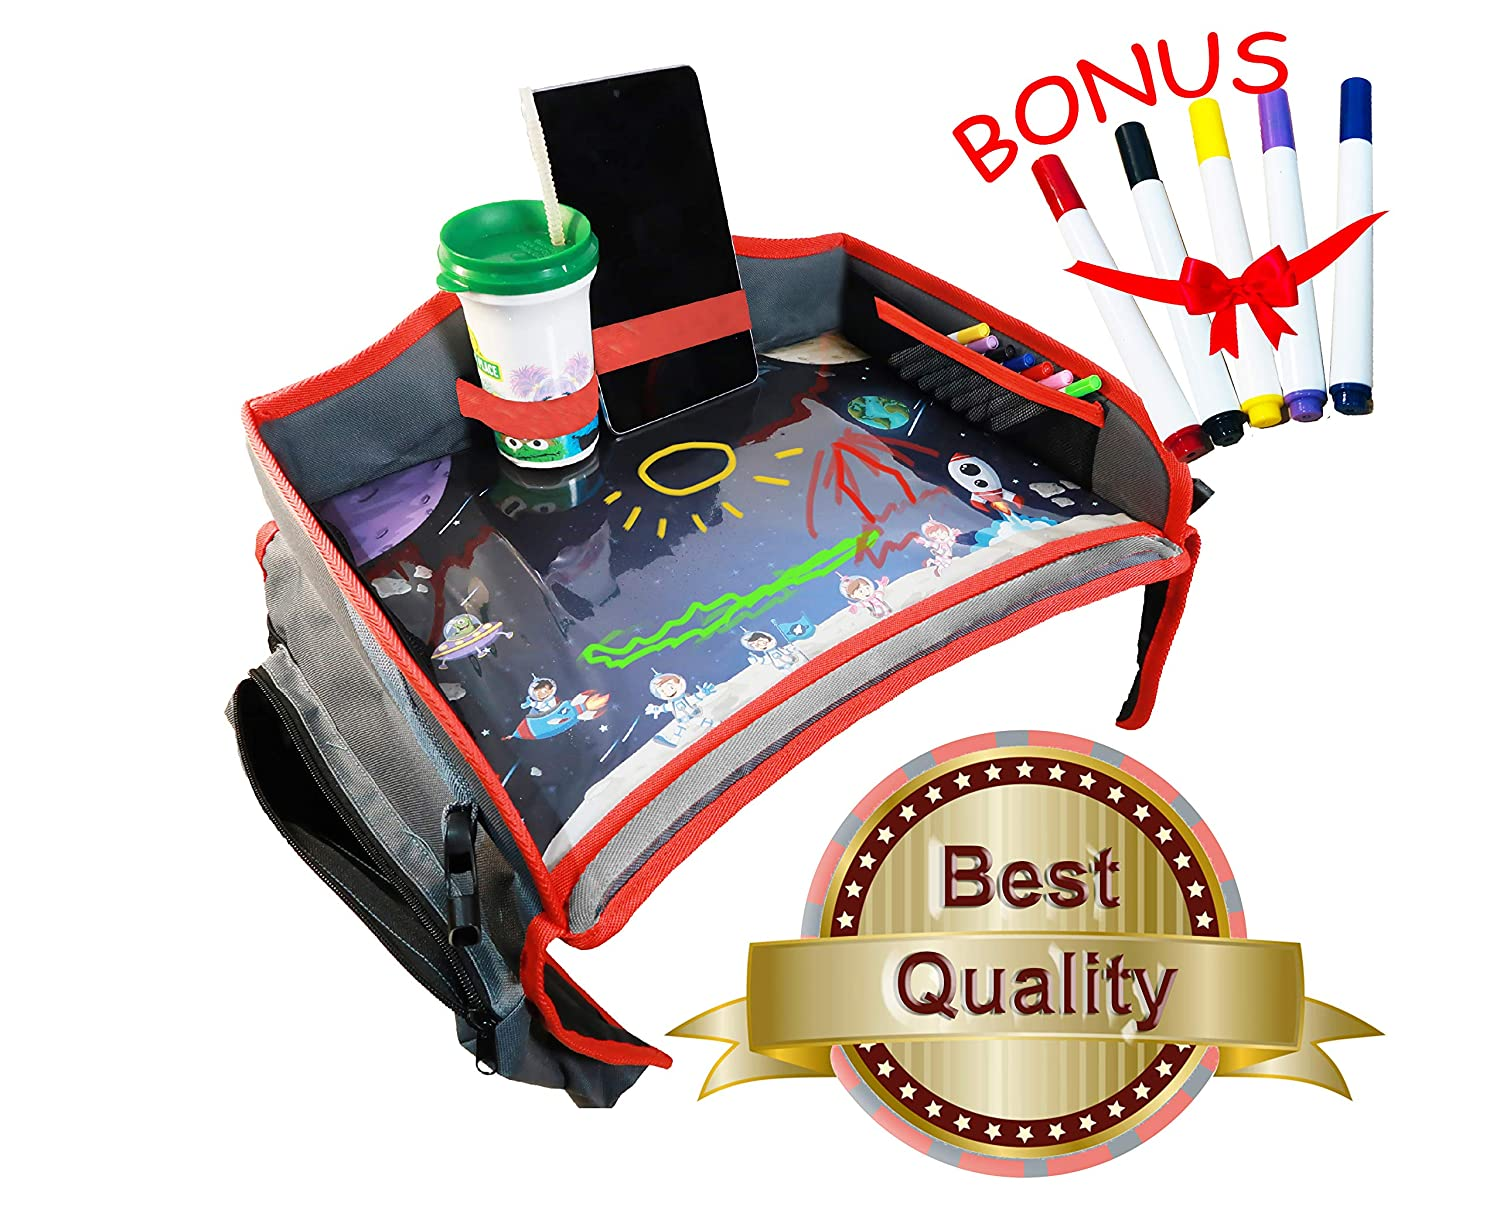 Toddler Car Seat Travel Tray. Kids Travel Tray with Erasable Surface, Side Pockets and Wet Wipe for Any Car Seat, Stroller, Airplane and High Chair by Little Explorer Made In China